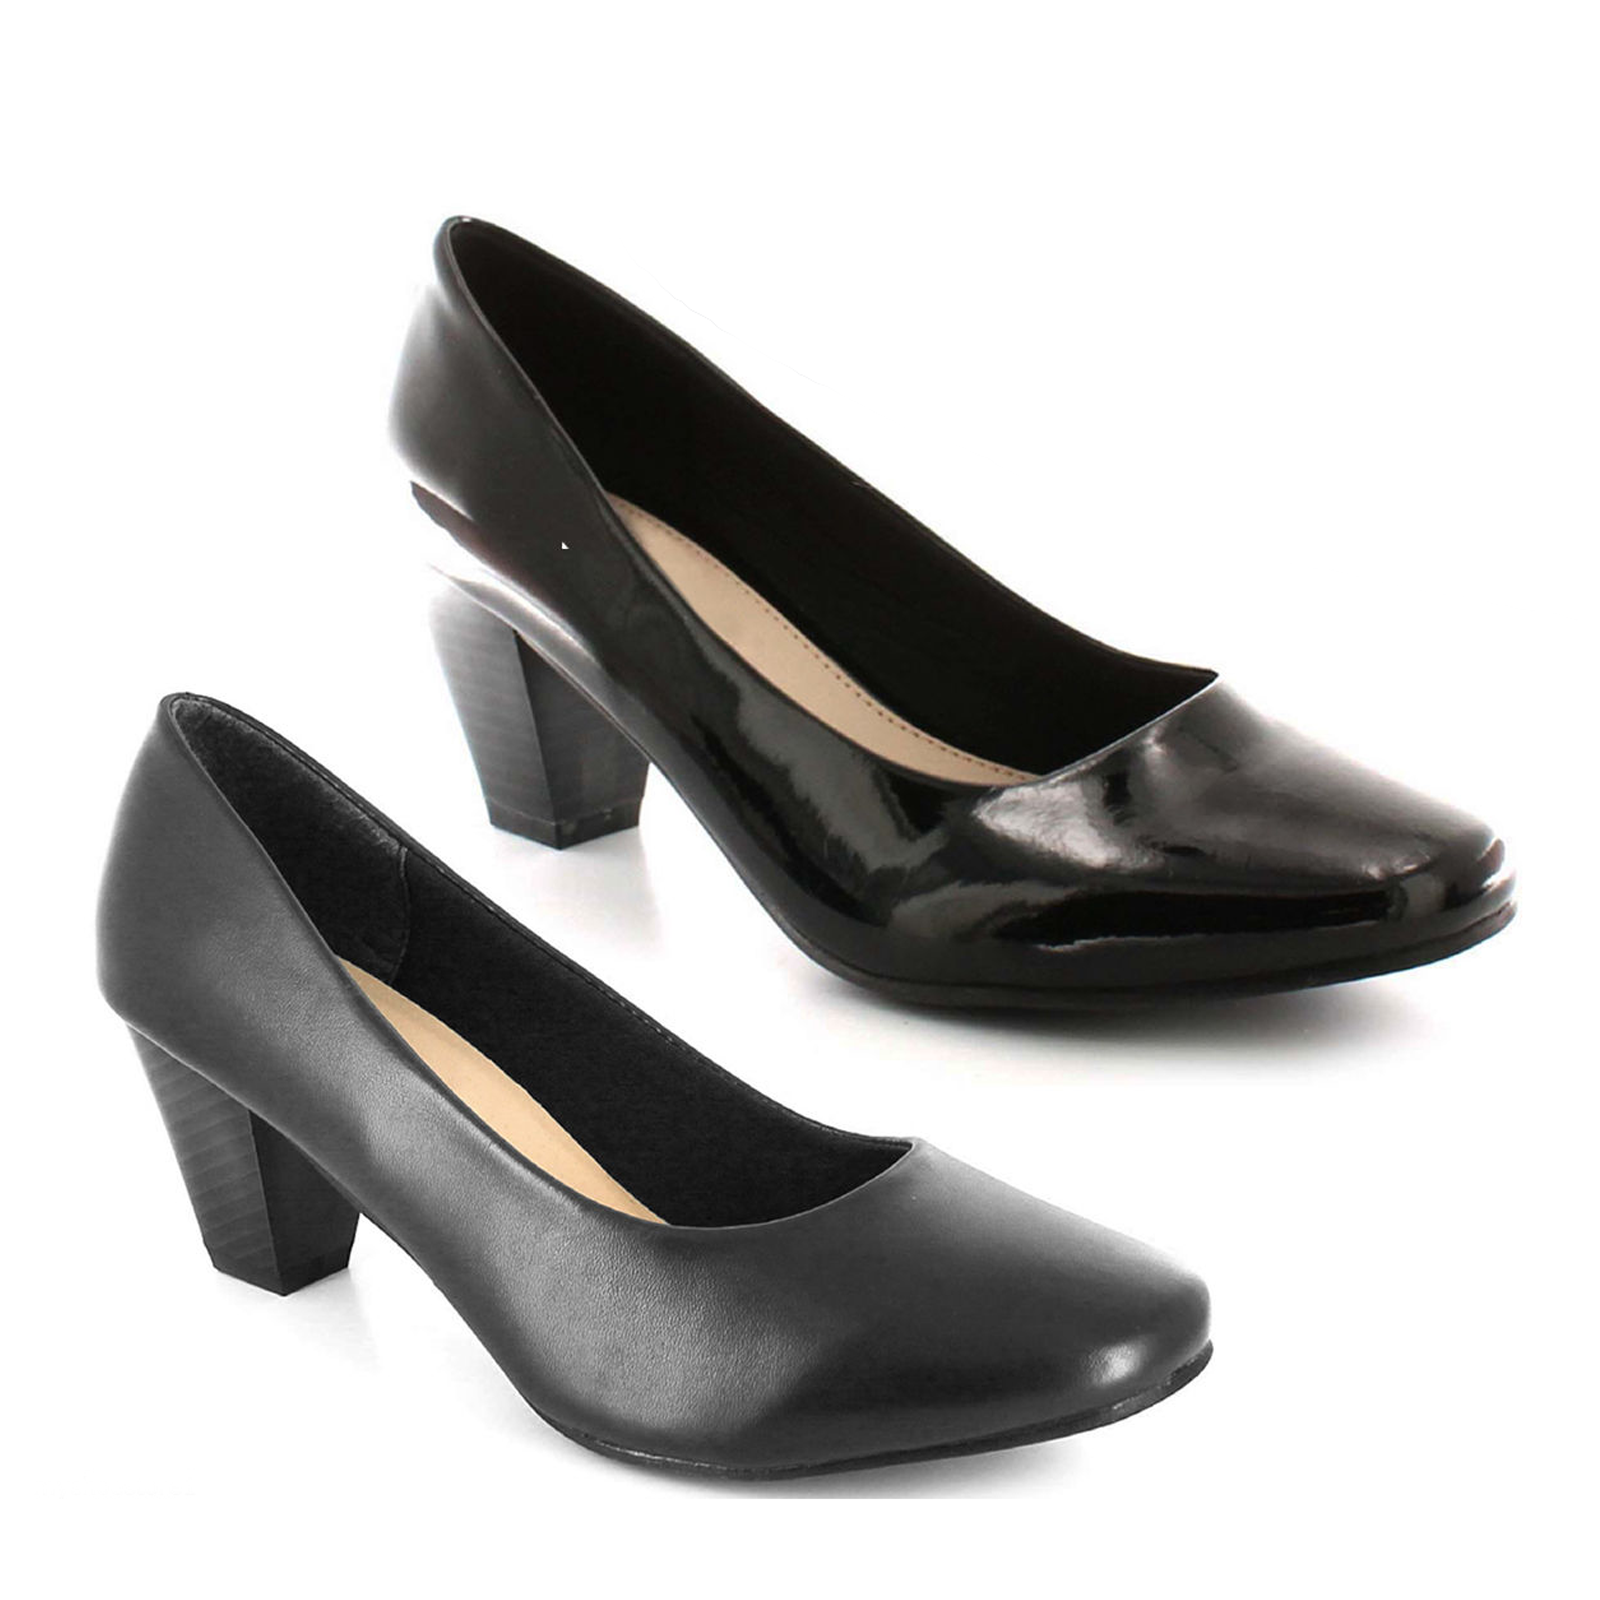 f384b7d132a ... PAULA WOMEN S WIDE FIT COURT SHOES. COURT-Comfort-plus-main3